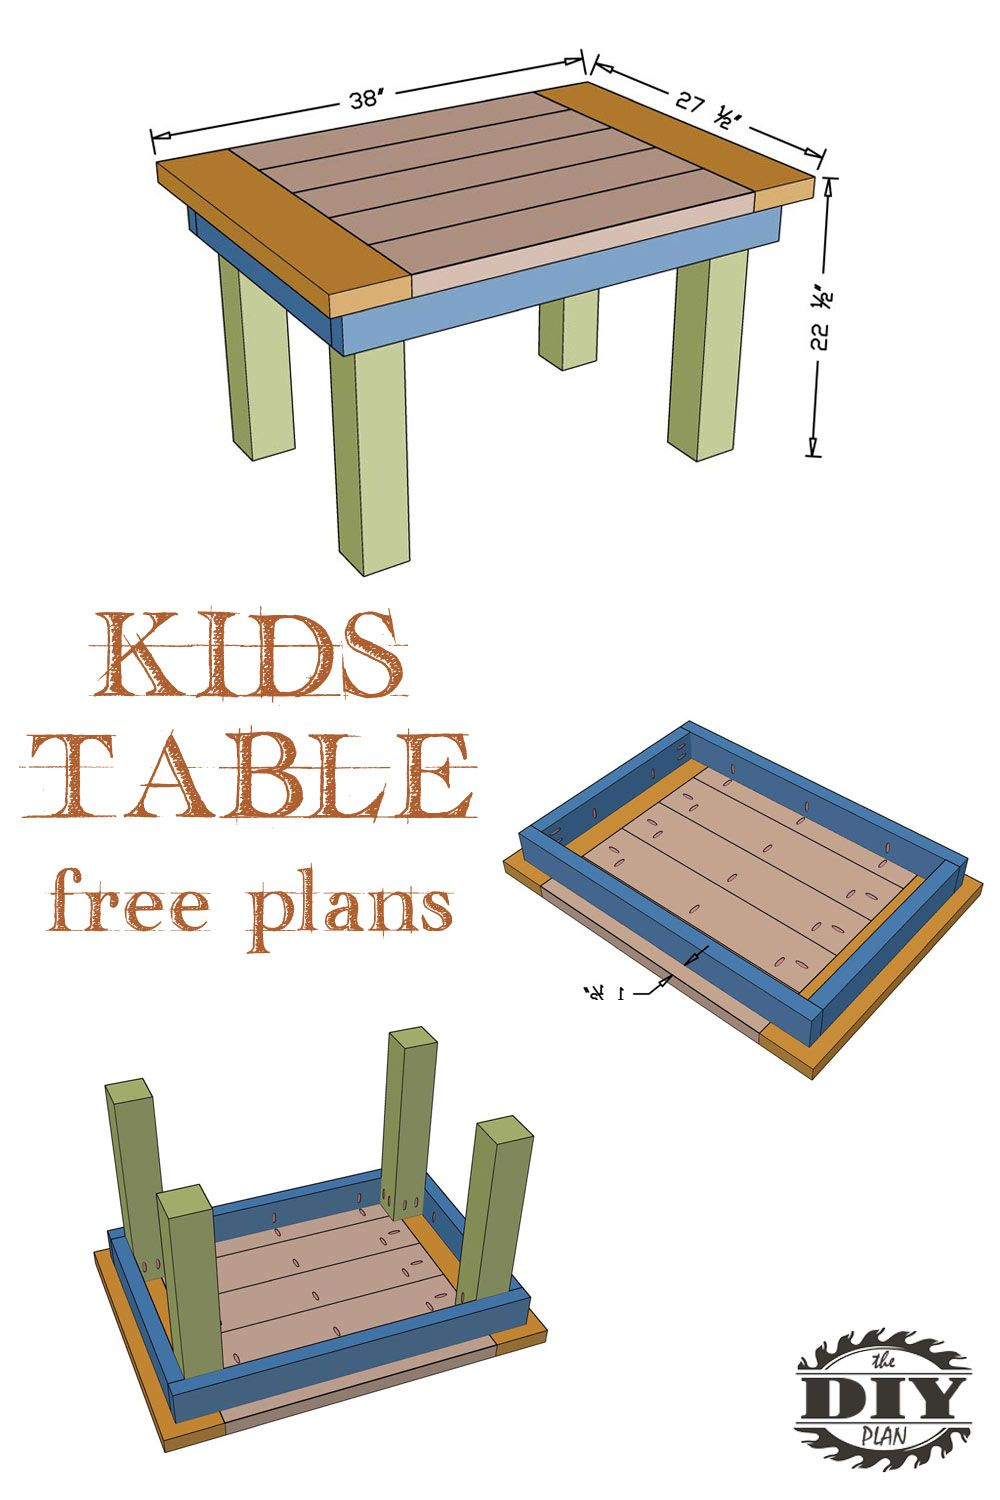 How to make DIY Kids Table - Free Plans (With images ...